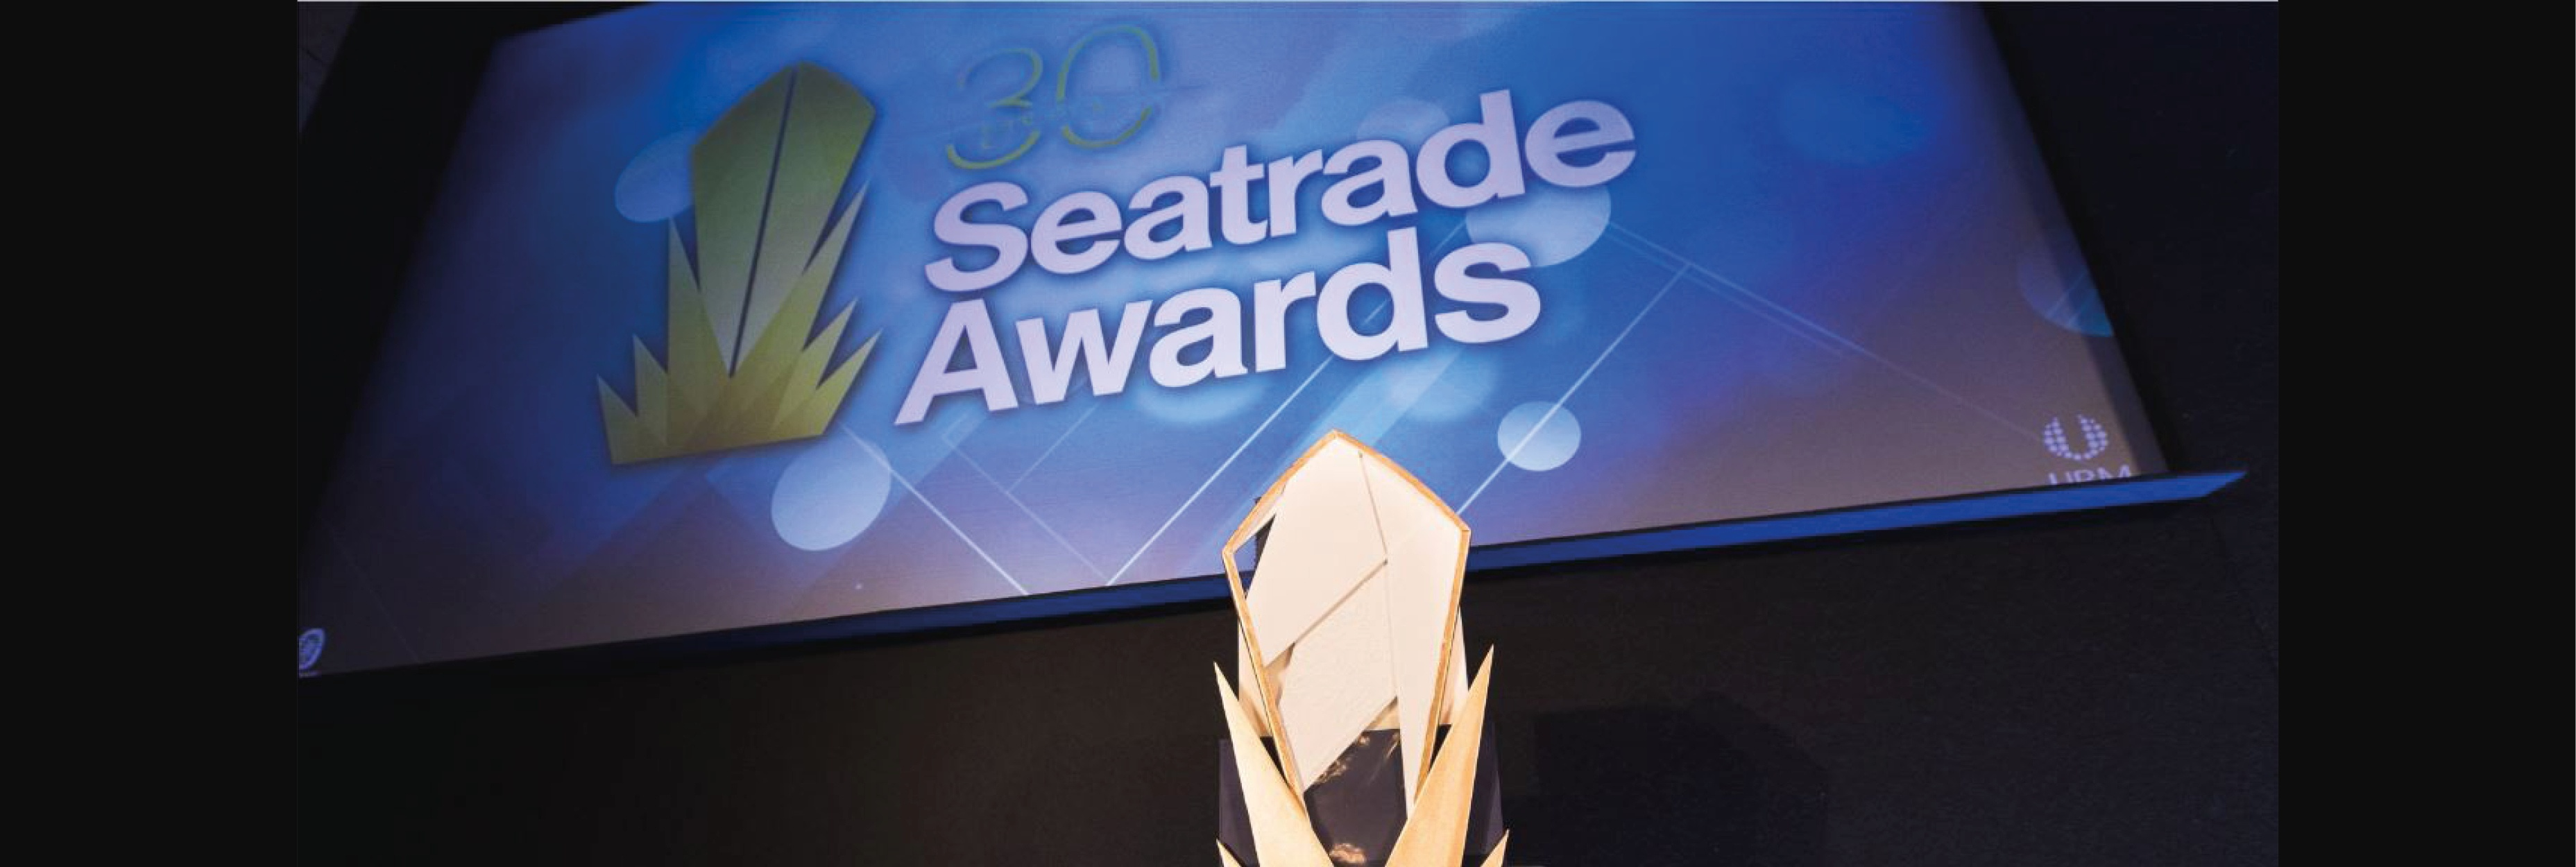 Seatrade Awards 2018.jpg